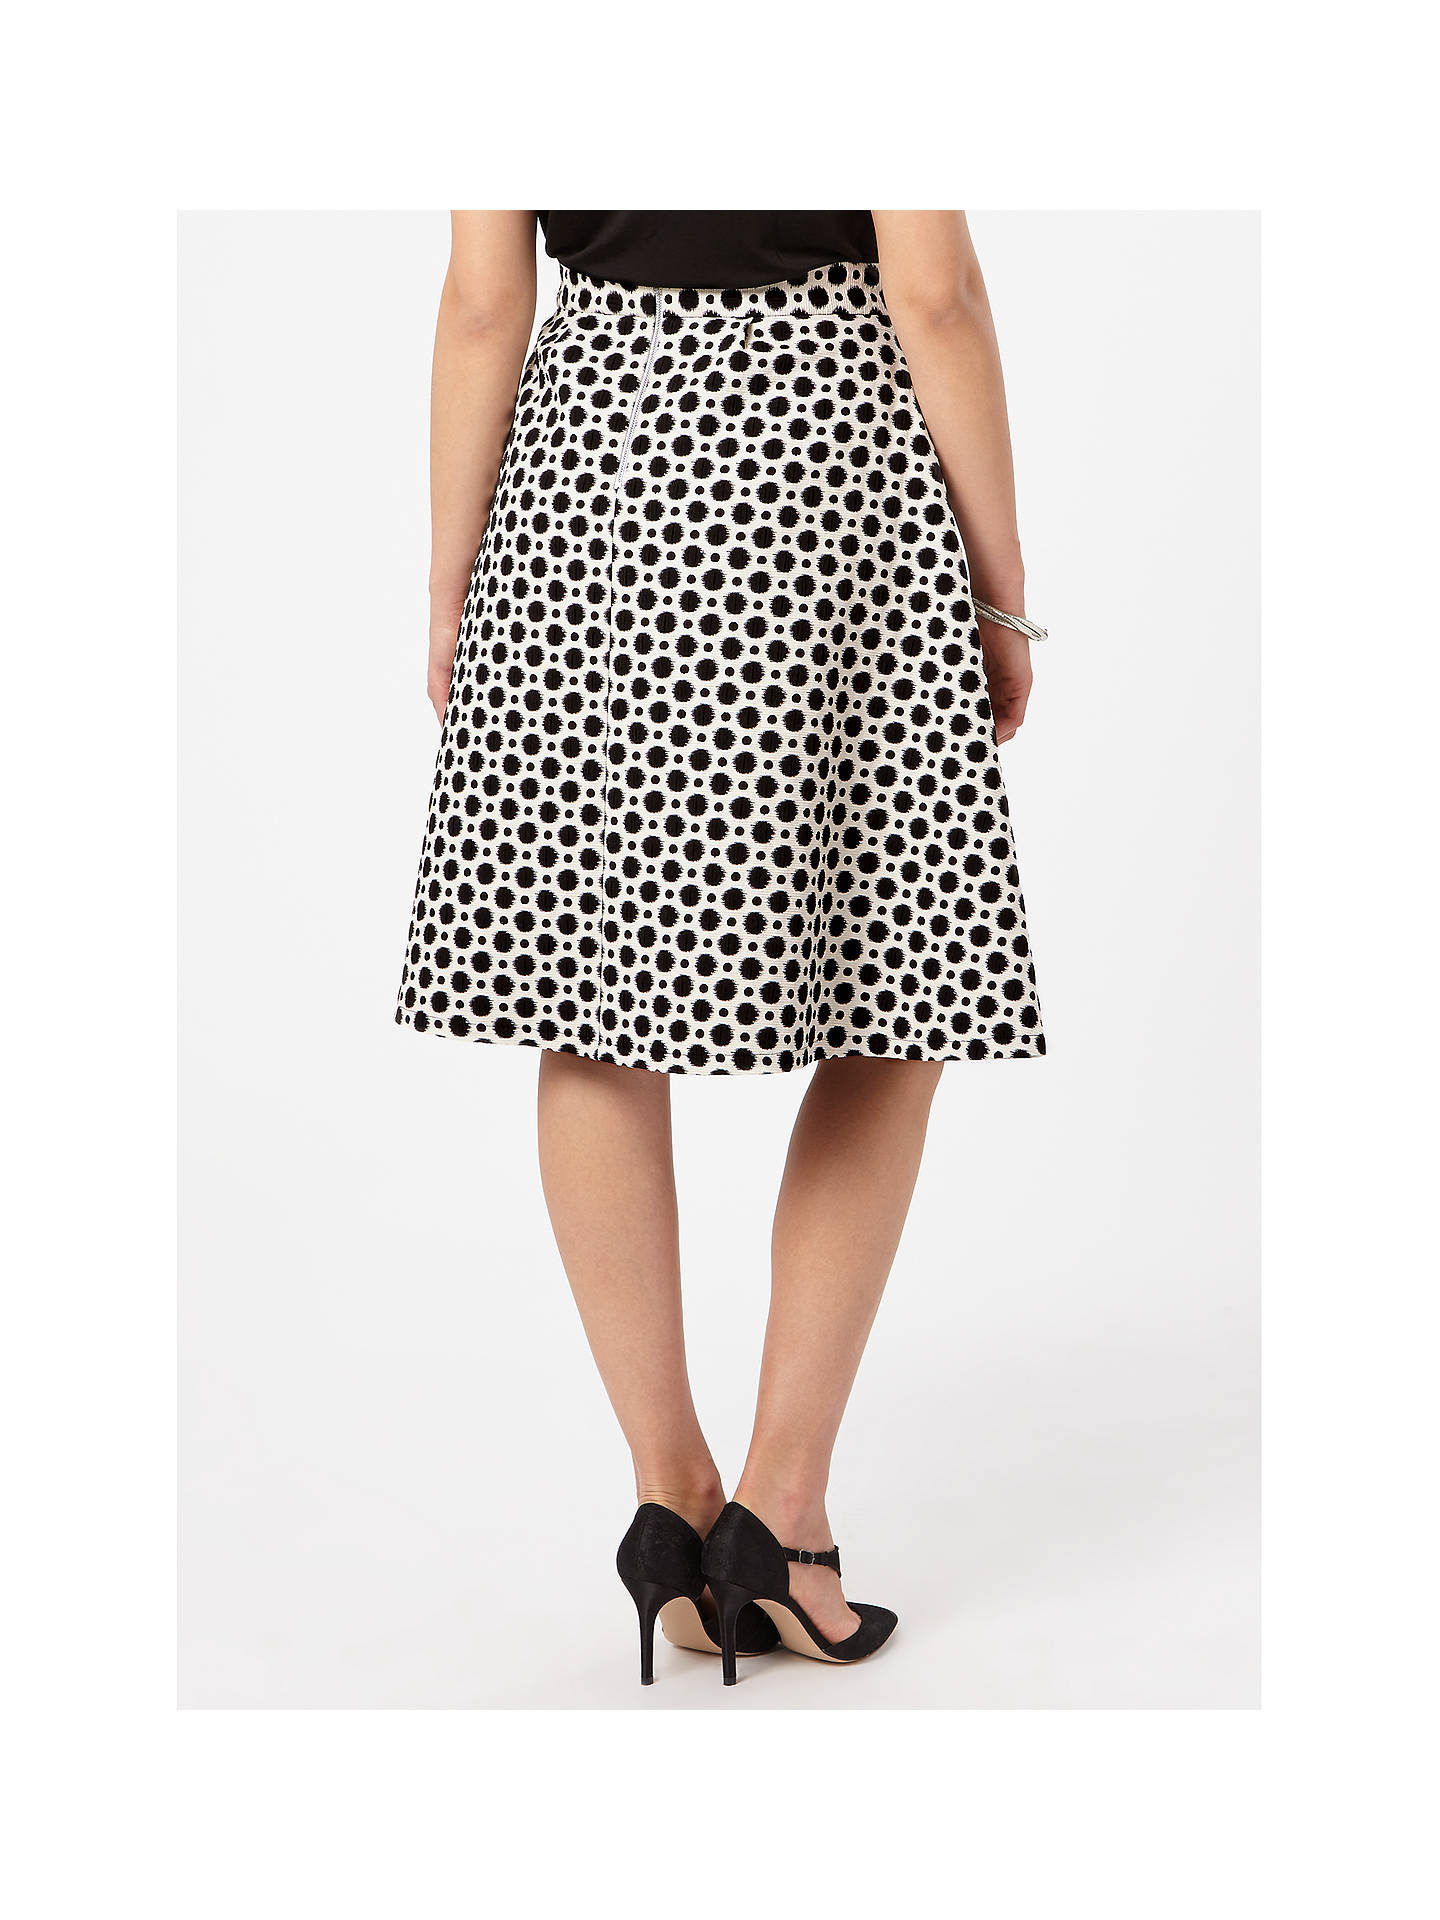 BuyStudio 8 Persia Skirt, Black/White, 14 Online at johnlewis.com